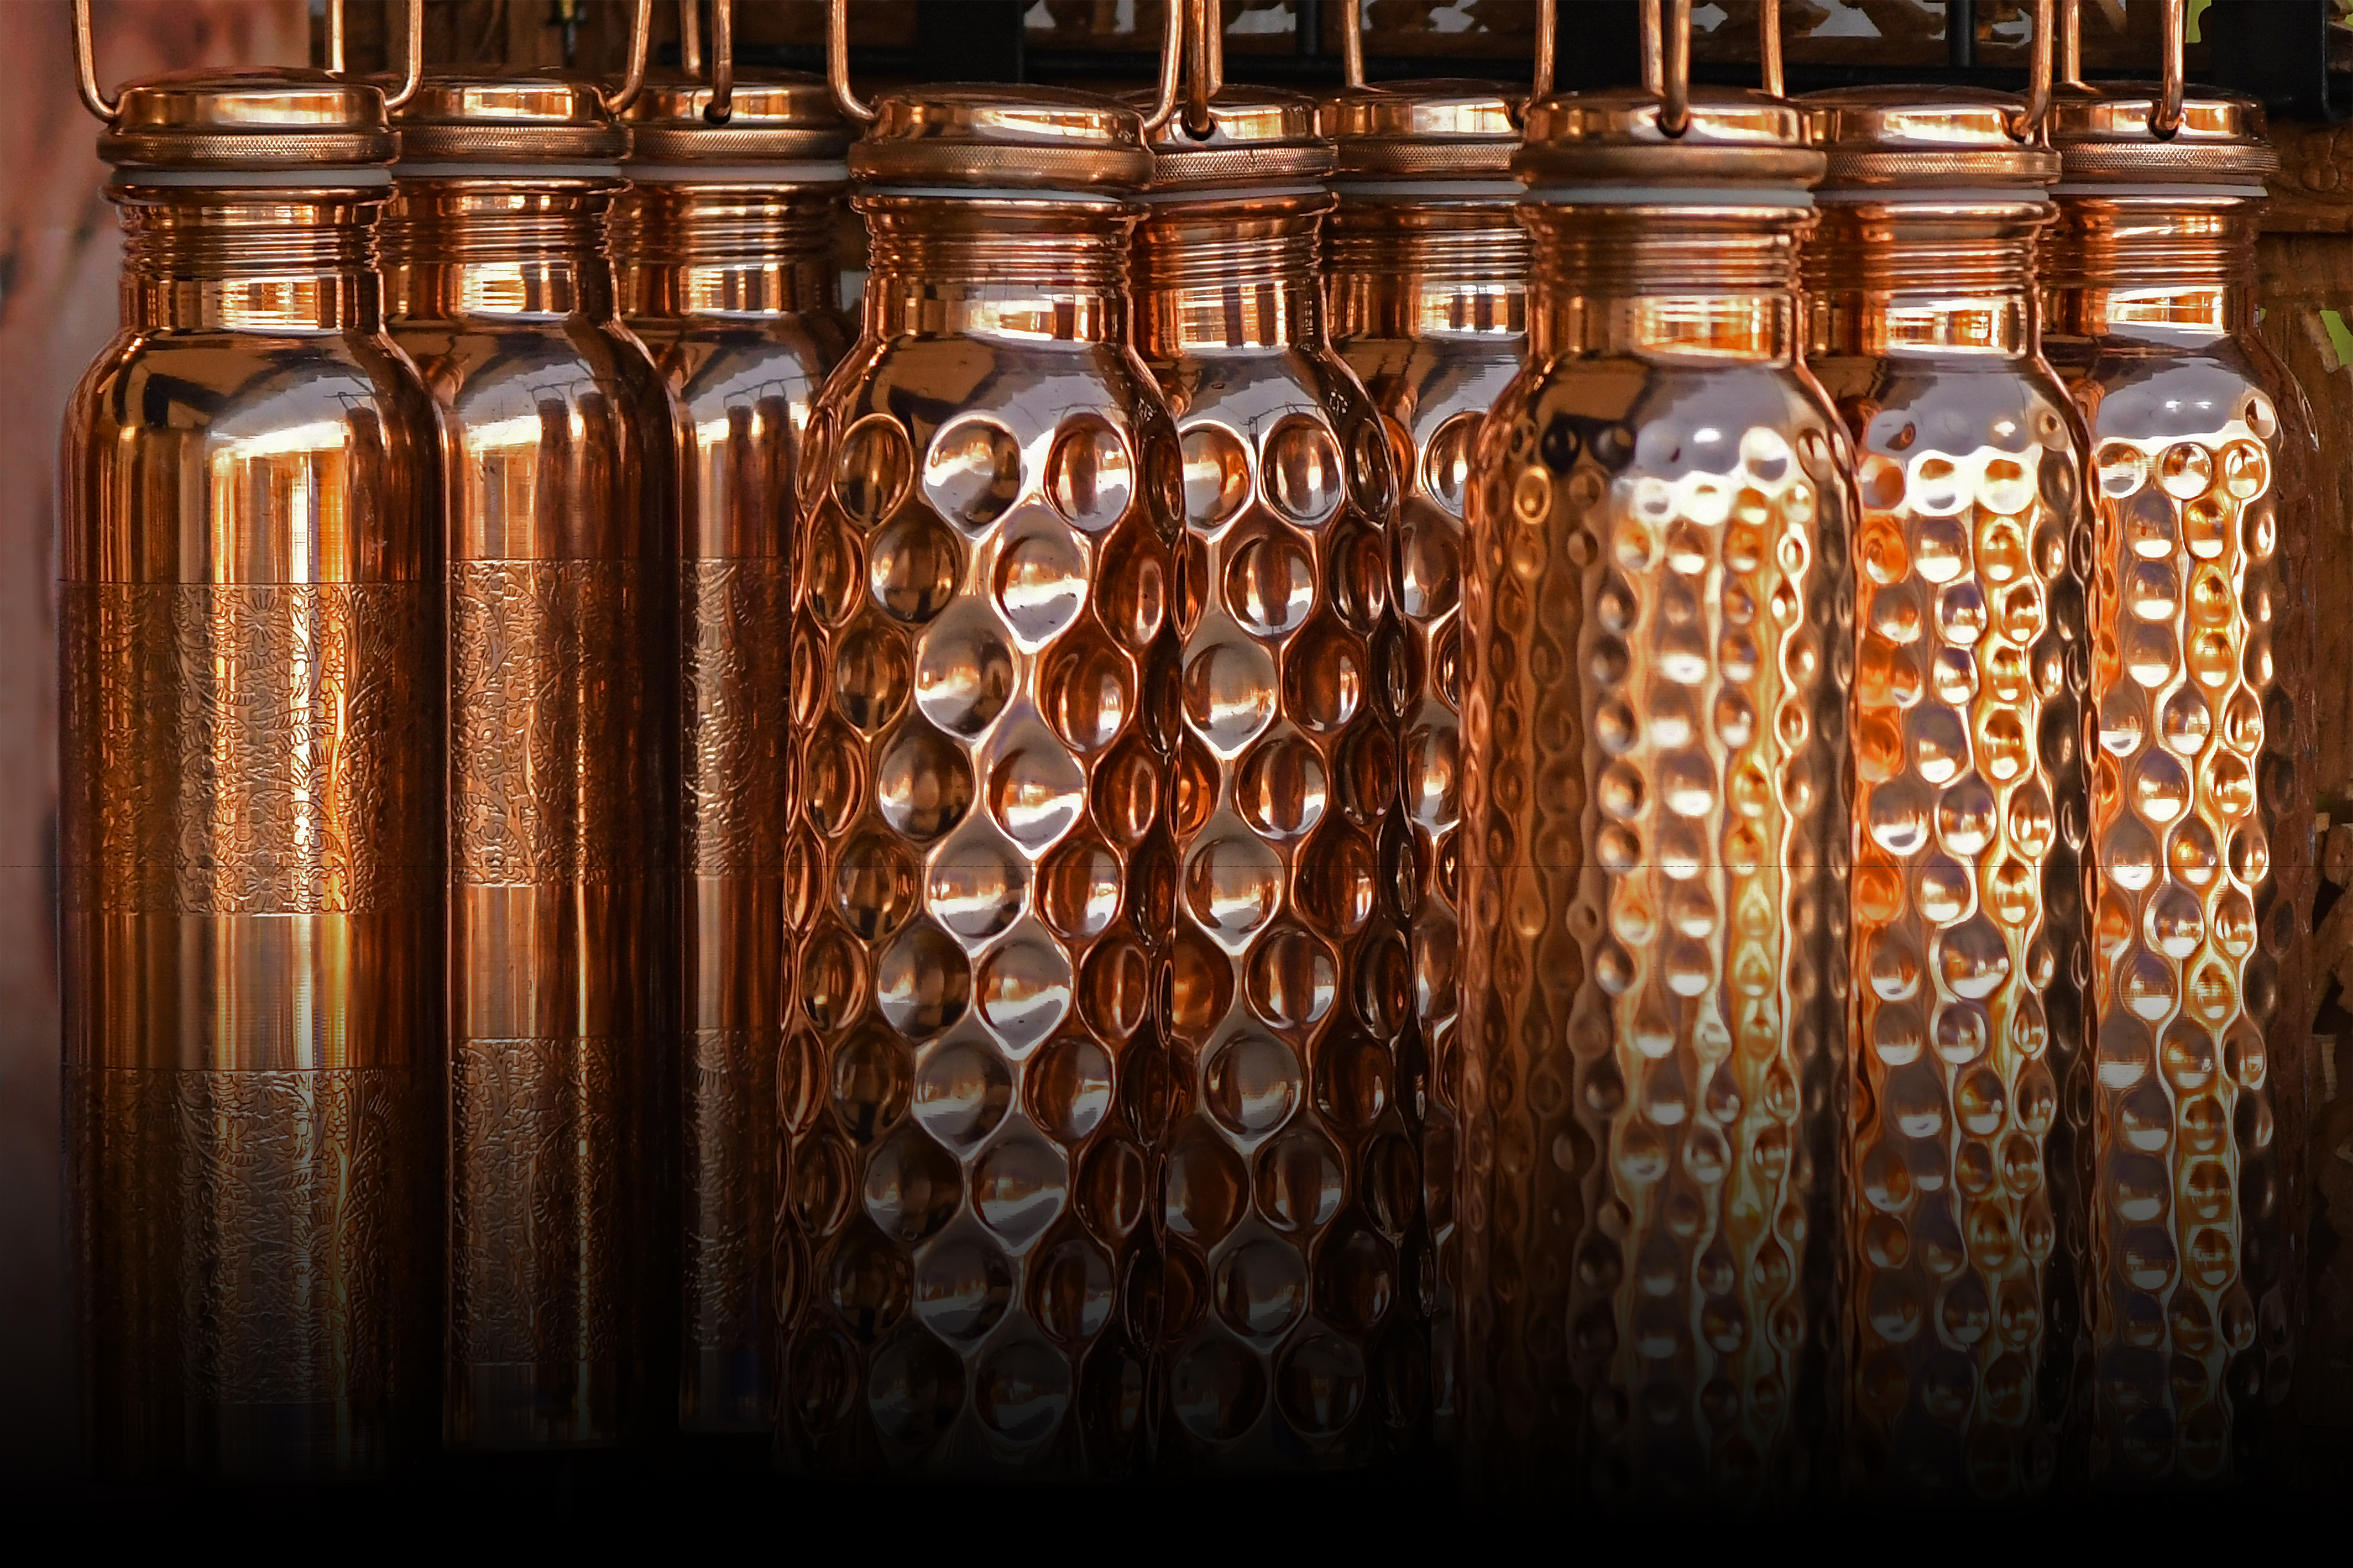 All You Need to Know About Copper Water Bottles